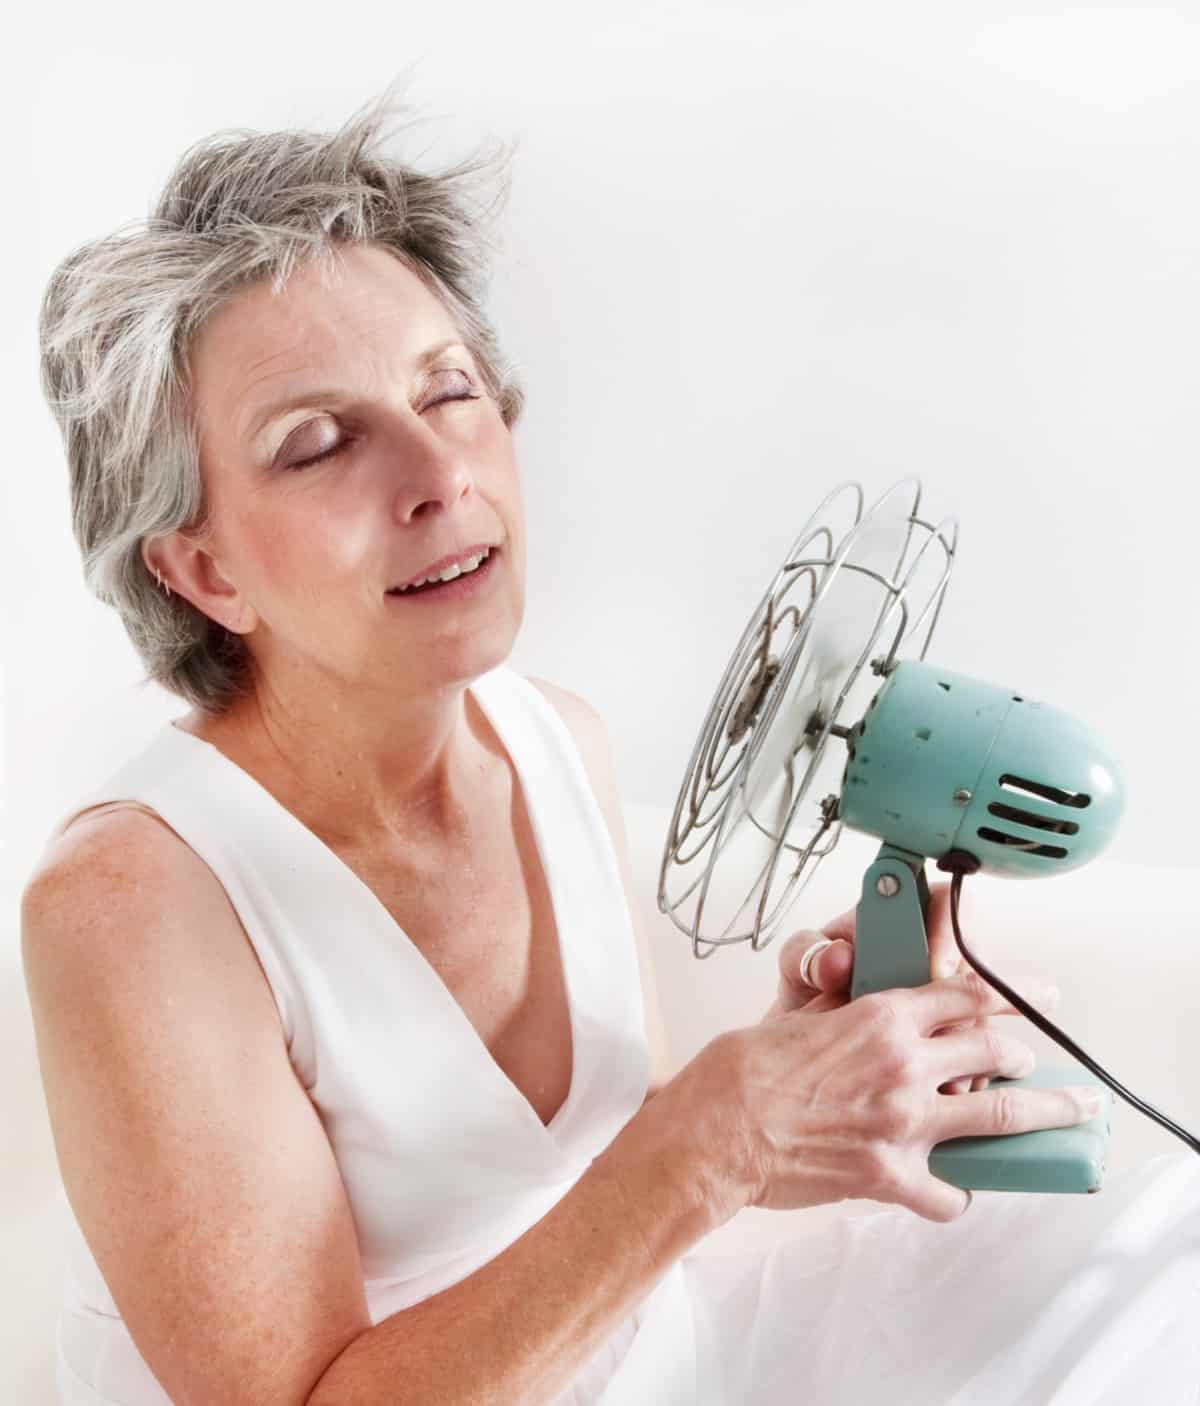 Menopausal woman using fan to cool down during a hot flash